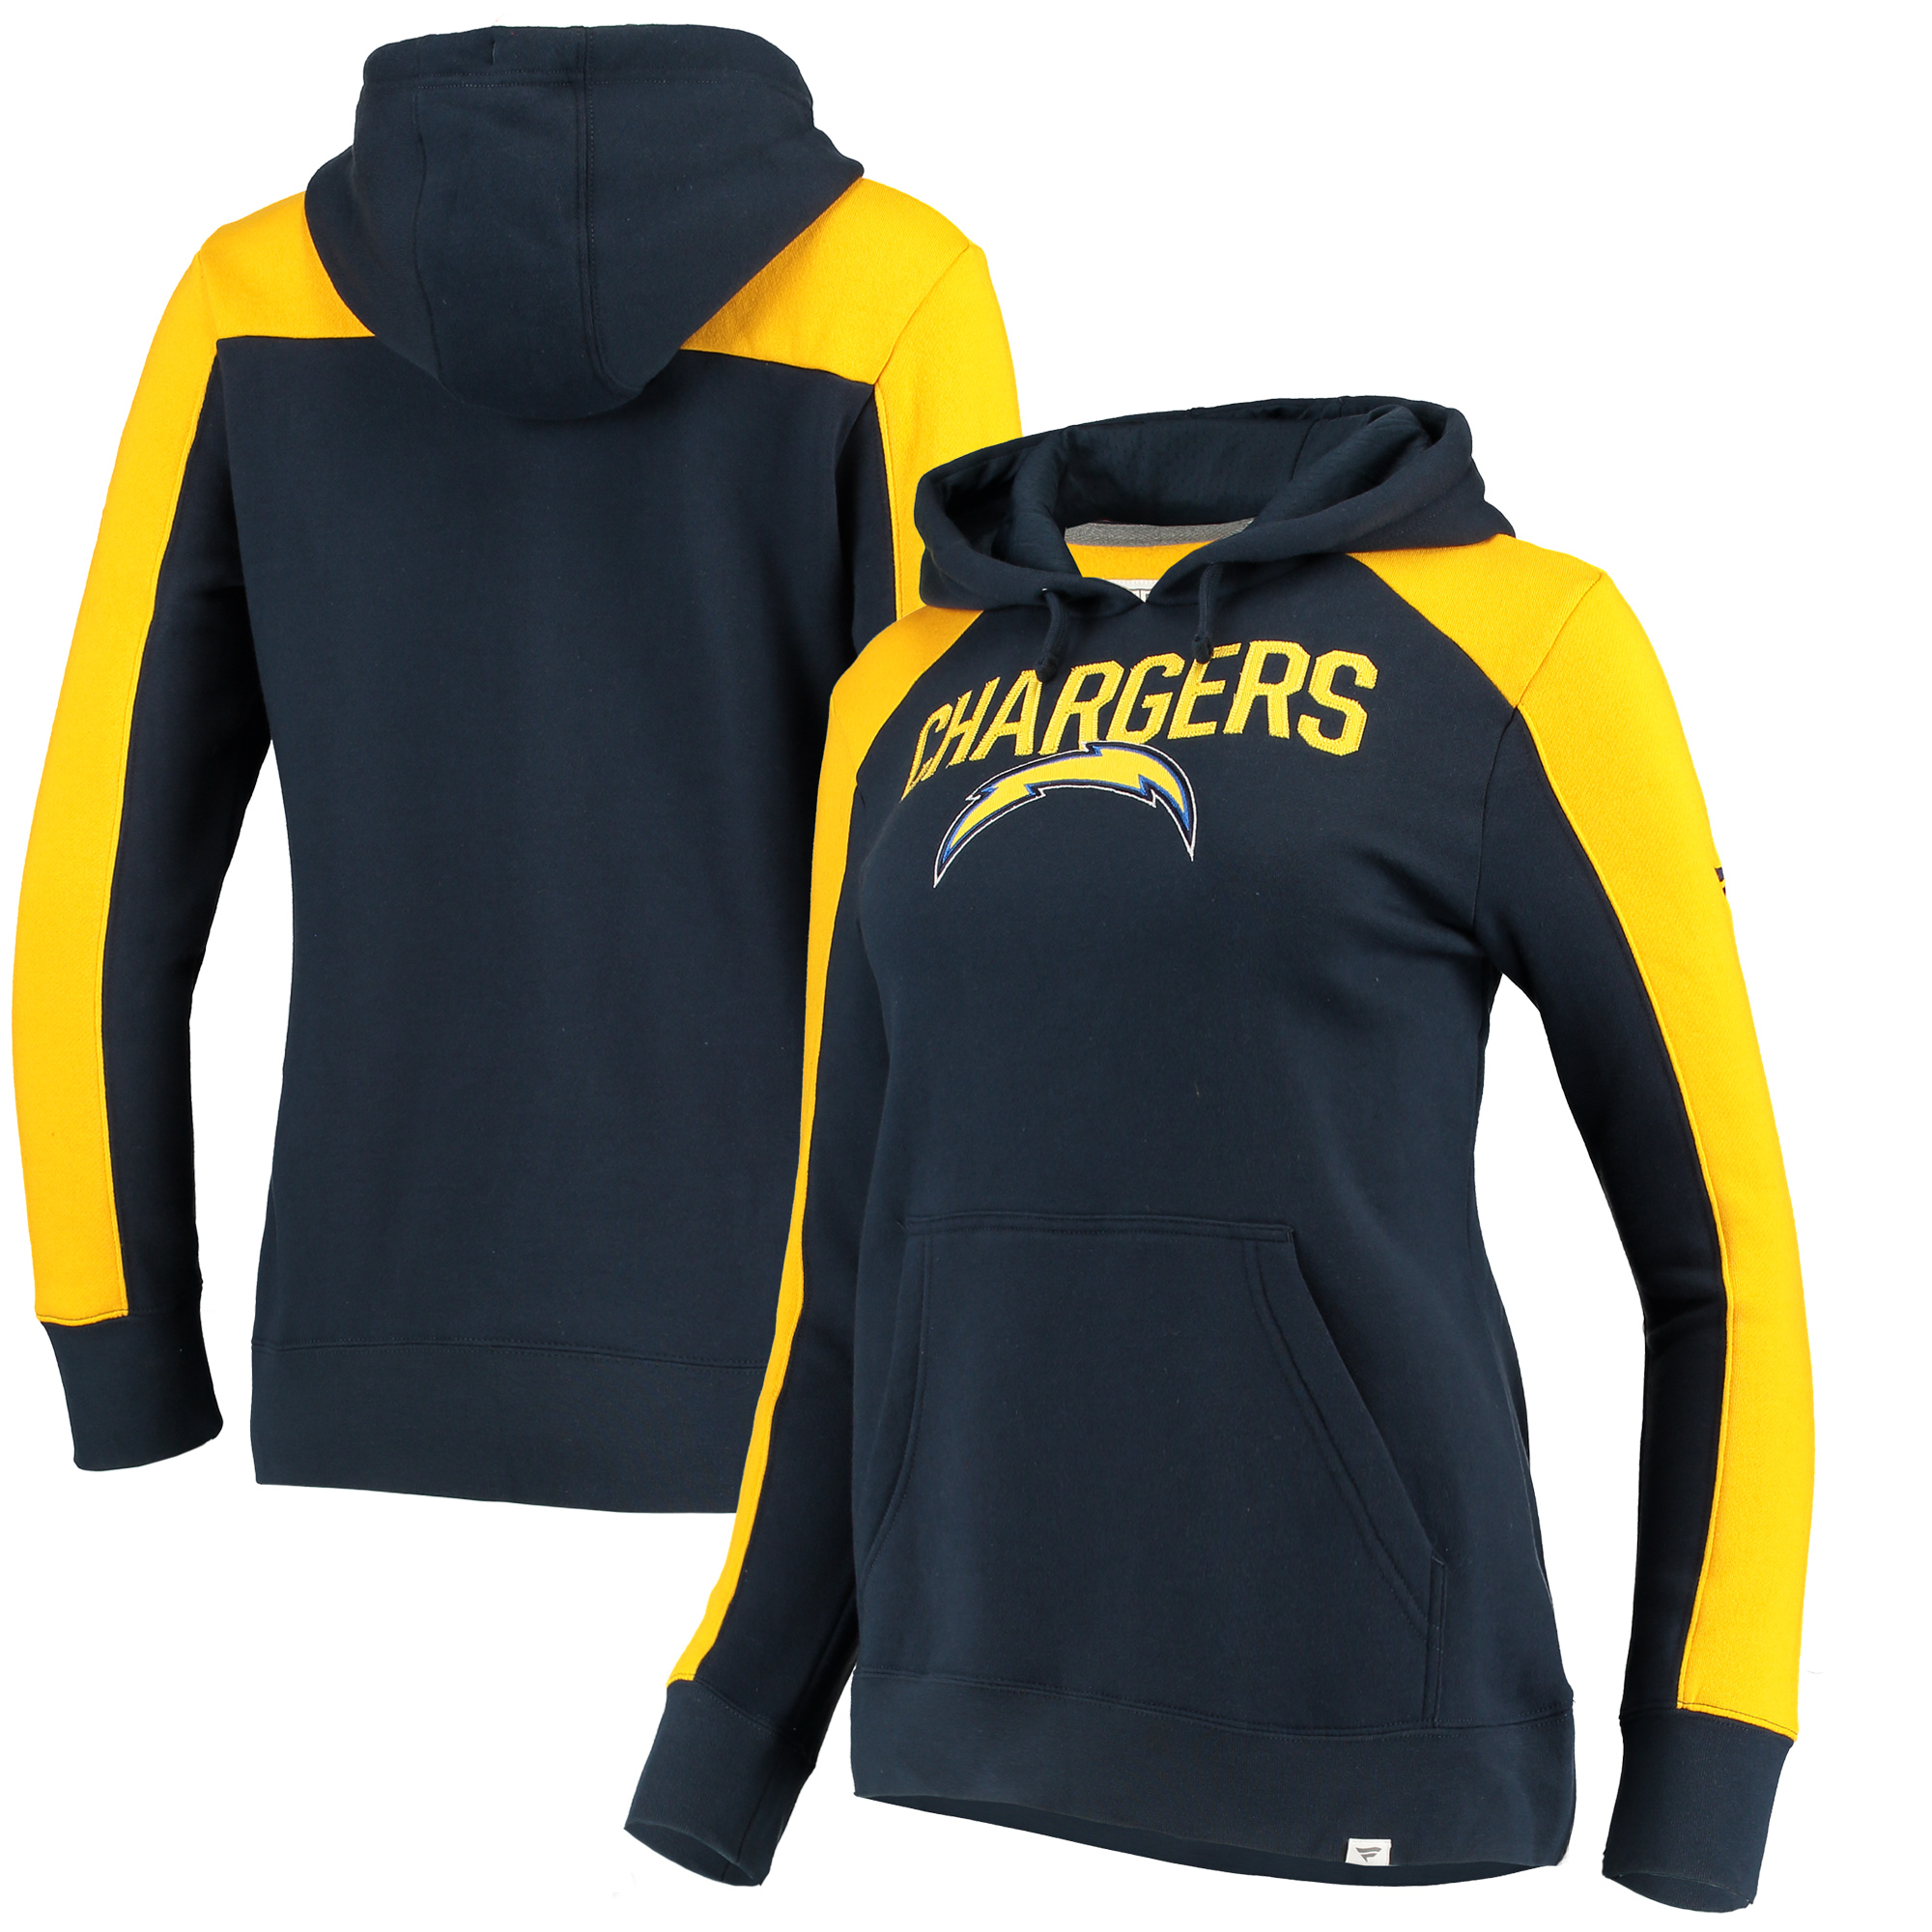 Los Angeles Chargers NFL Pro Line by Fanatics Branded Women's Iconic Fleece Pullover Hoodie - Navy/Gold